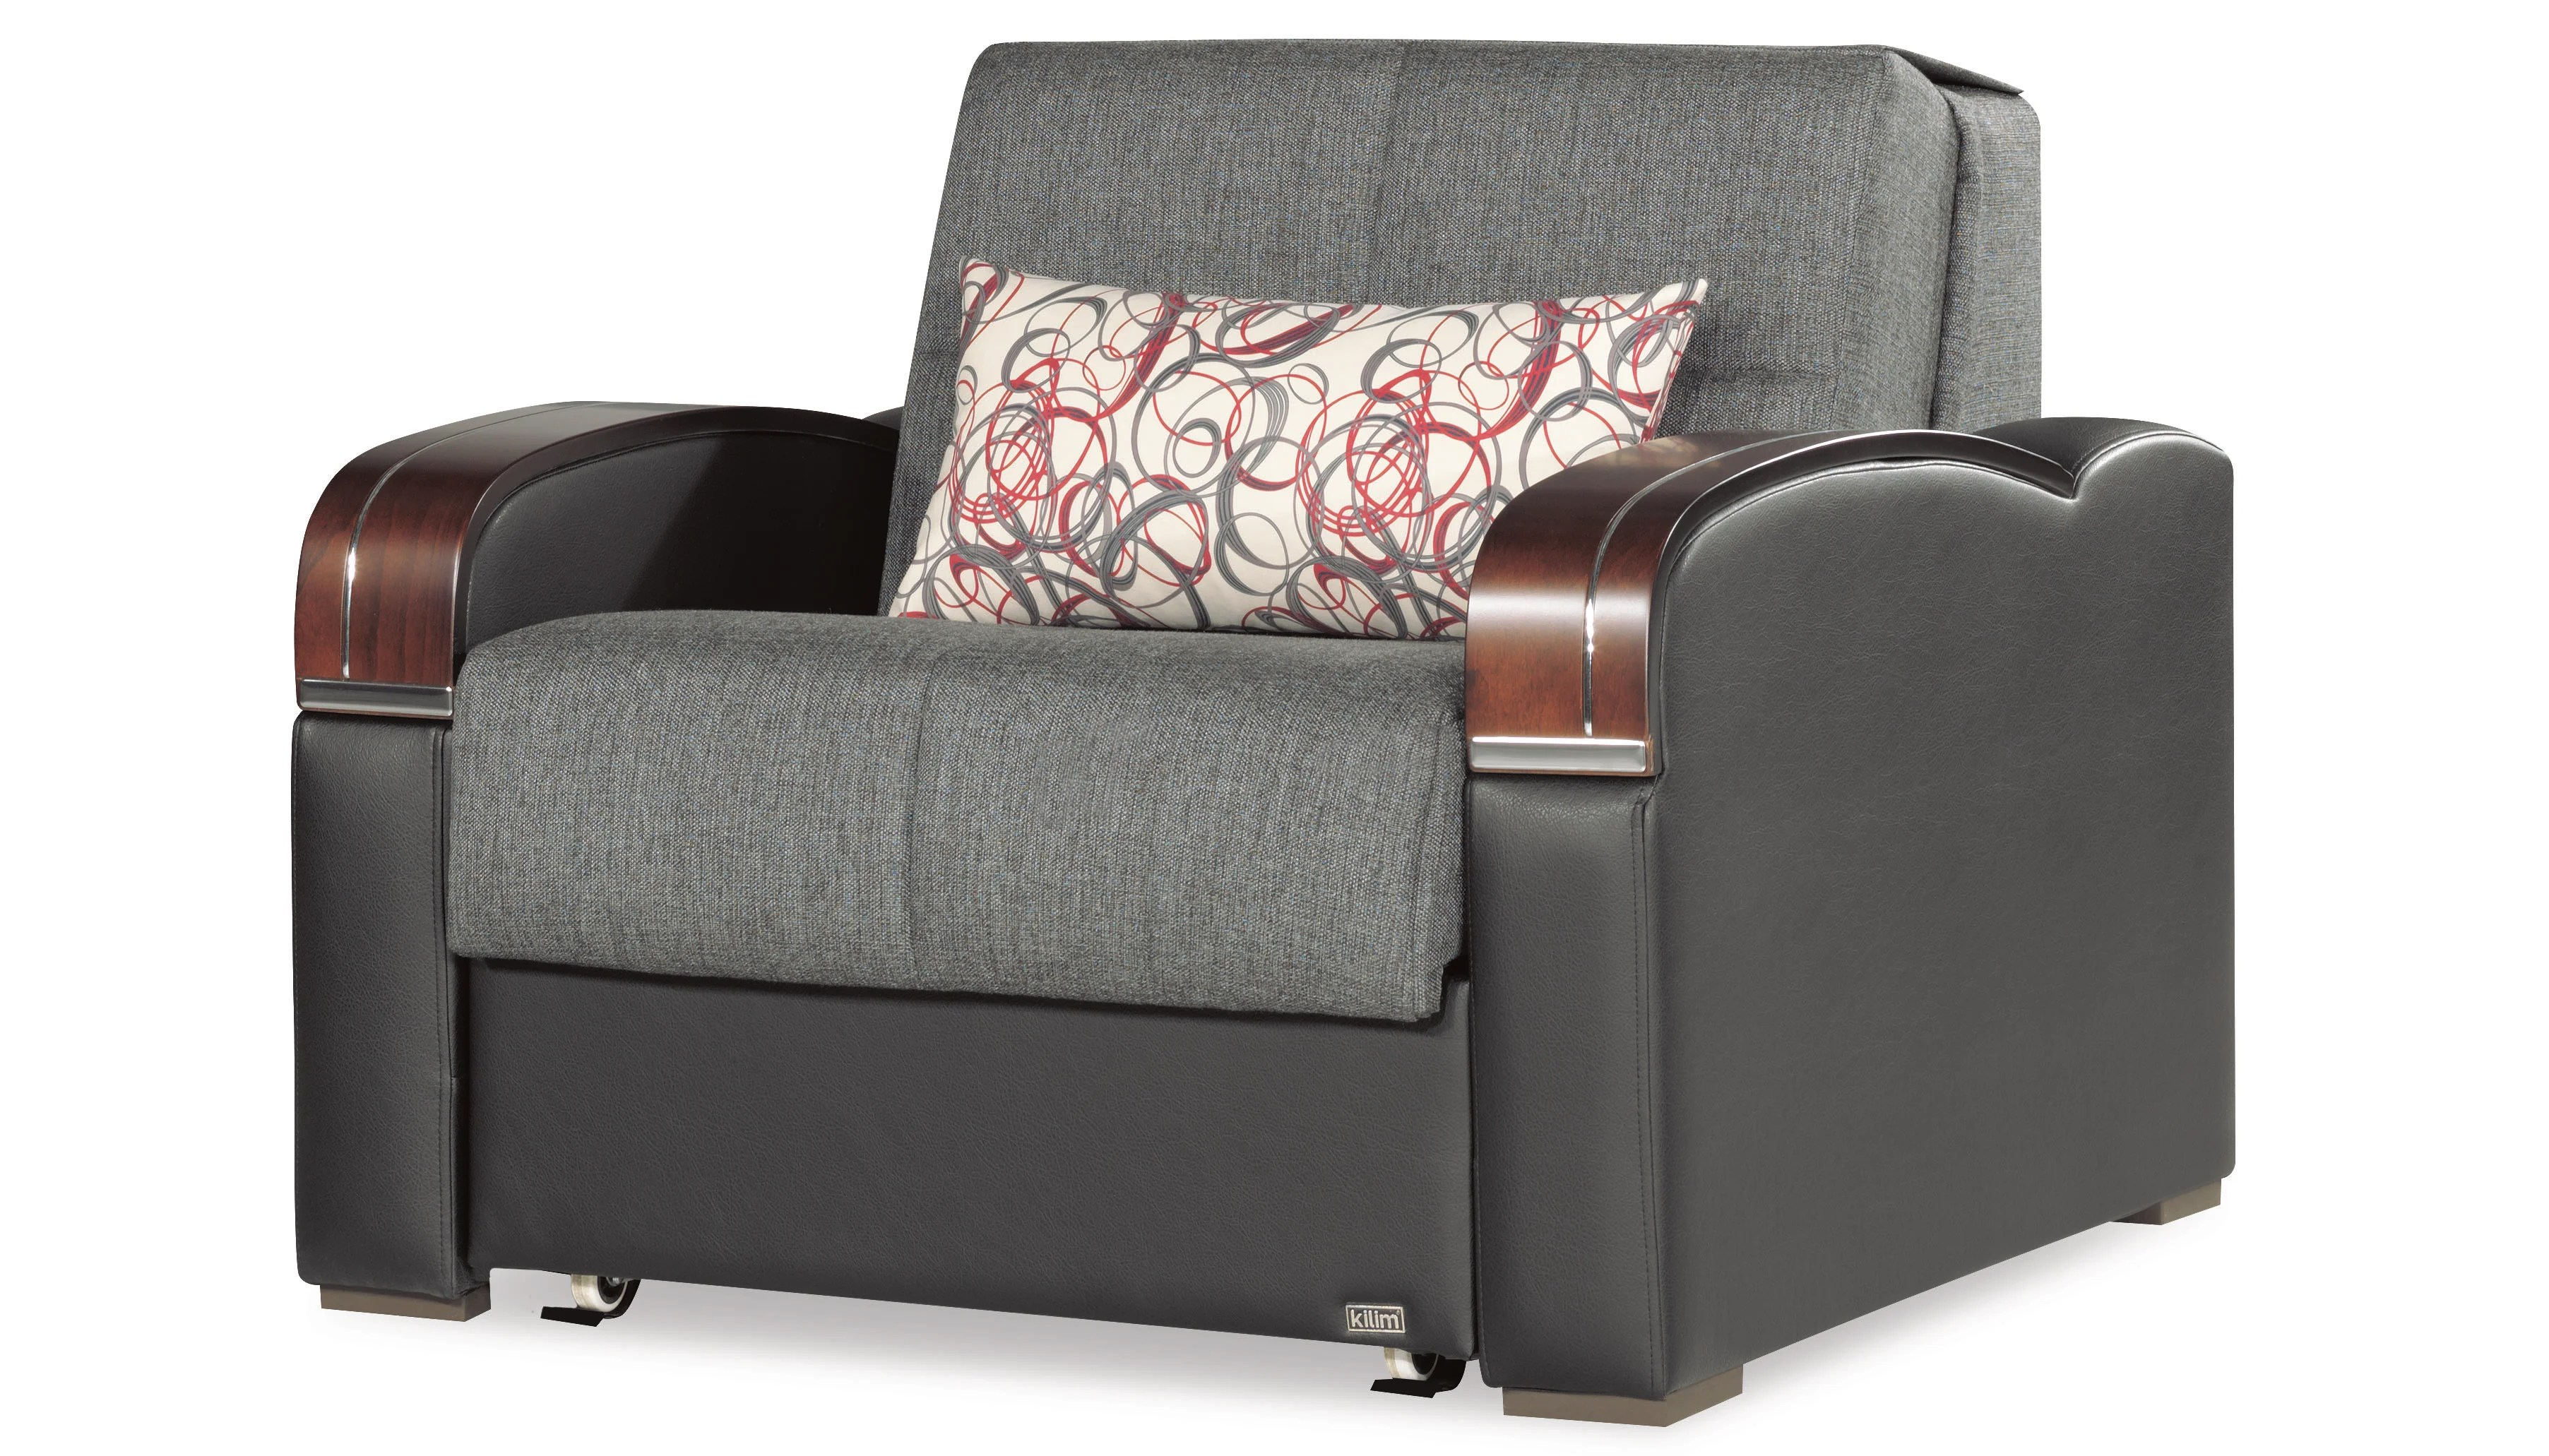 sleep plus gray convertible chair bed by casamode